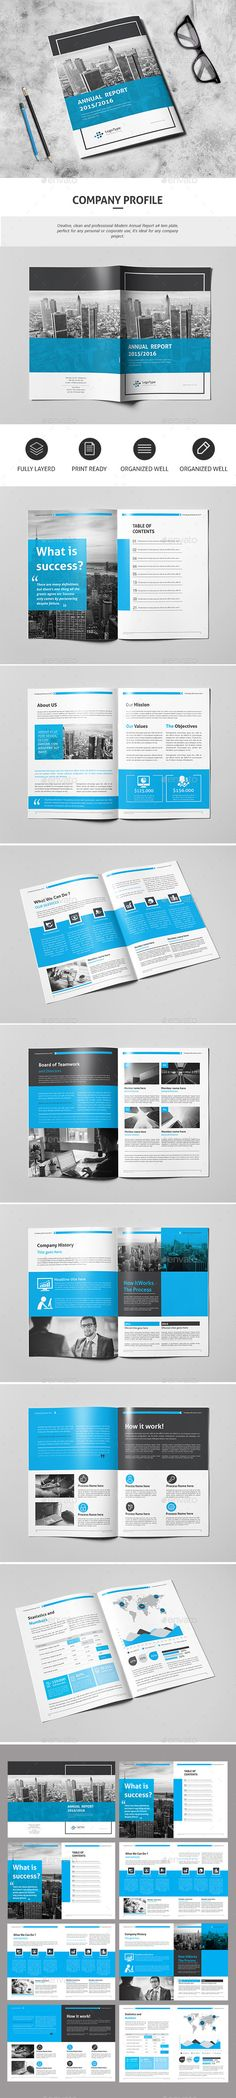 Clean Company Profile - Corporate Brochures Clean Pinterest - corporate profile template